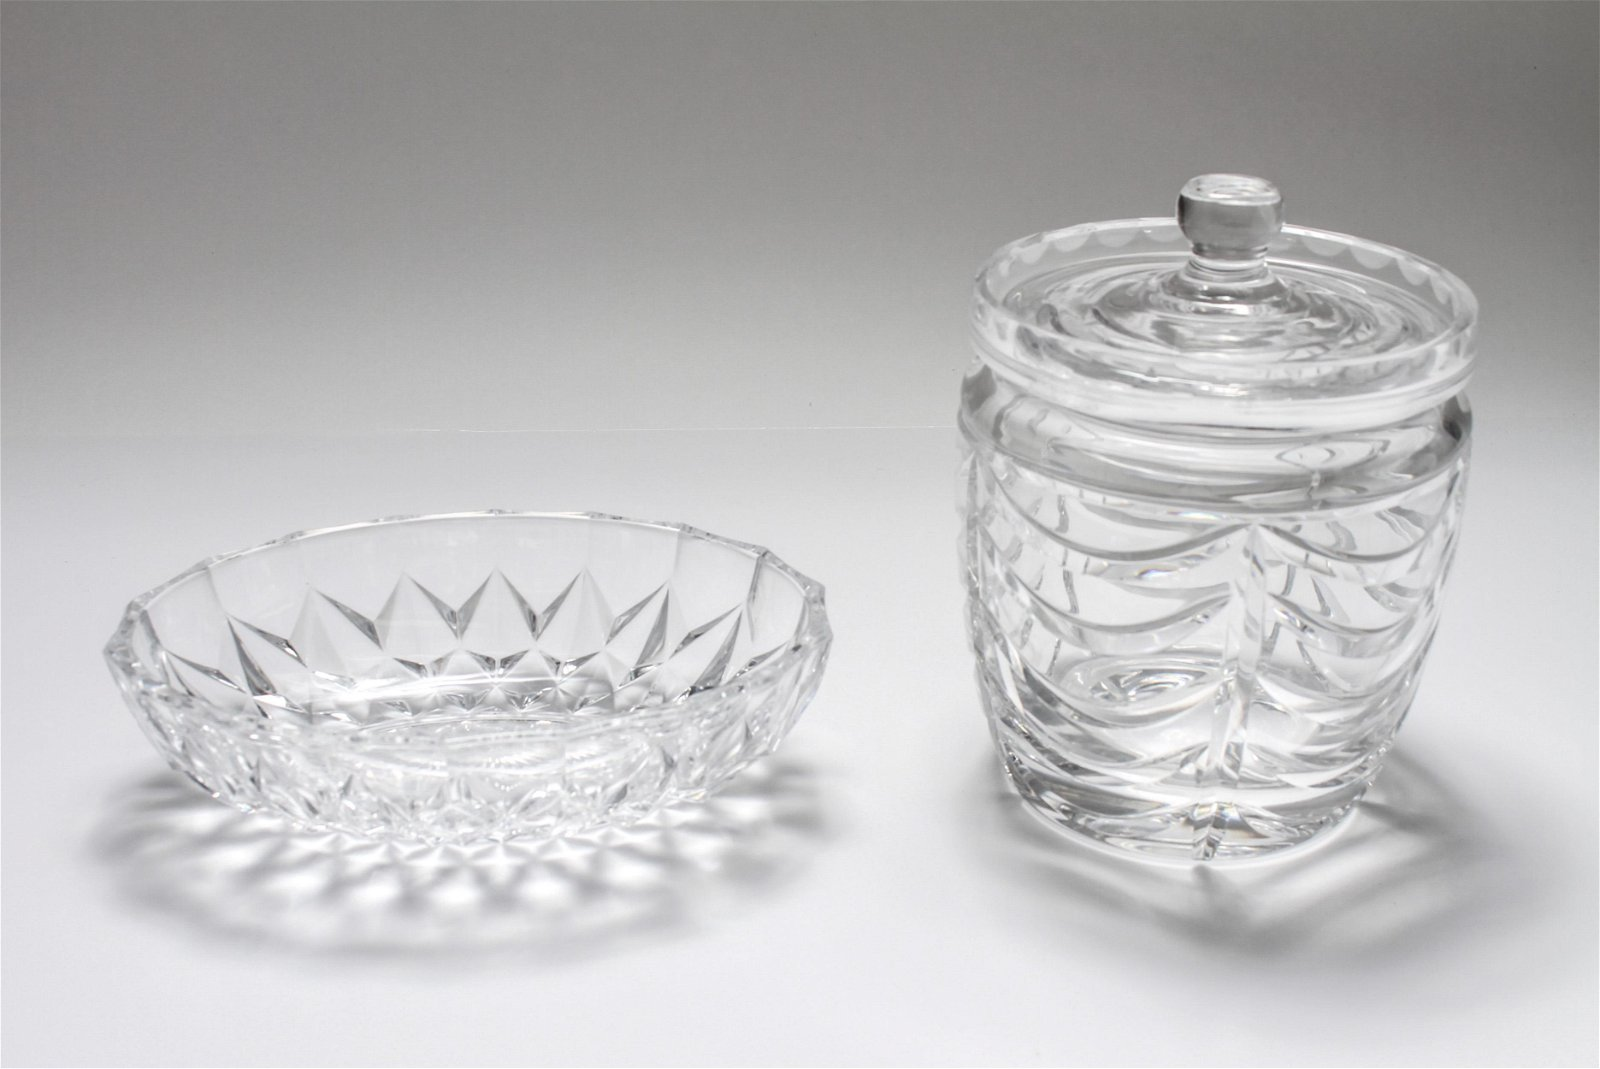 Tiffany & Co. Biscuit Jar & Val St. Lambert Tray